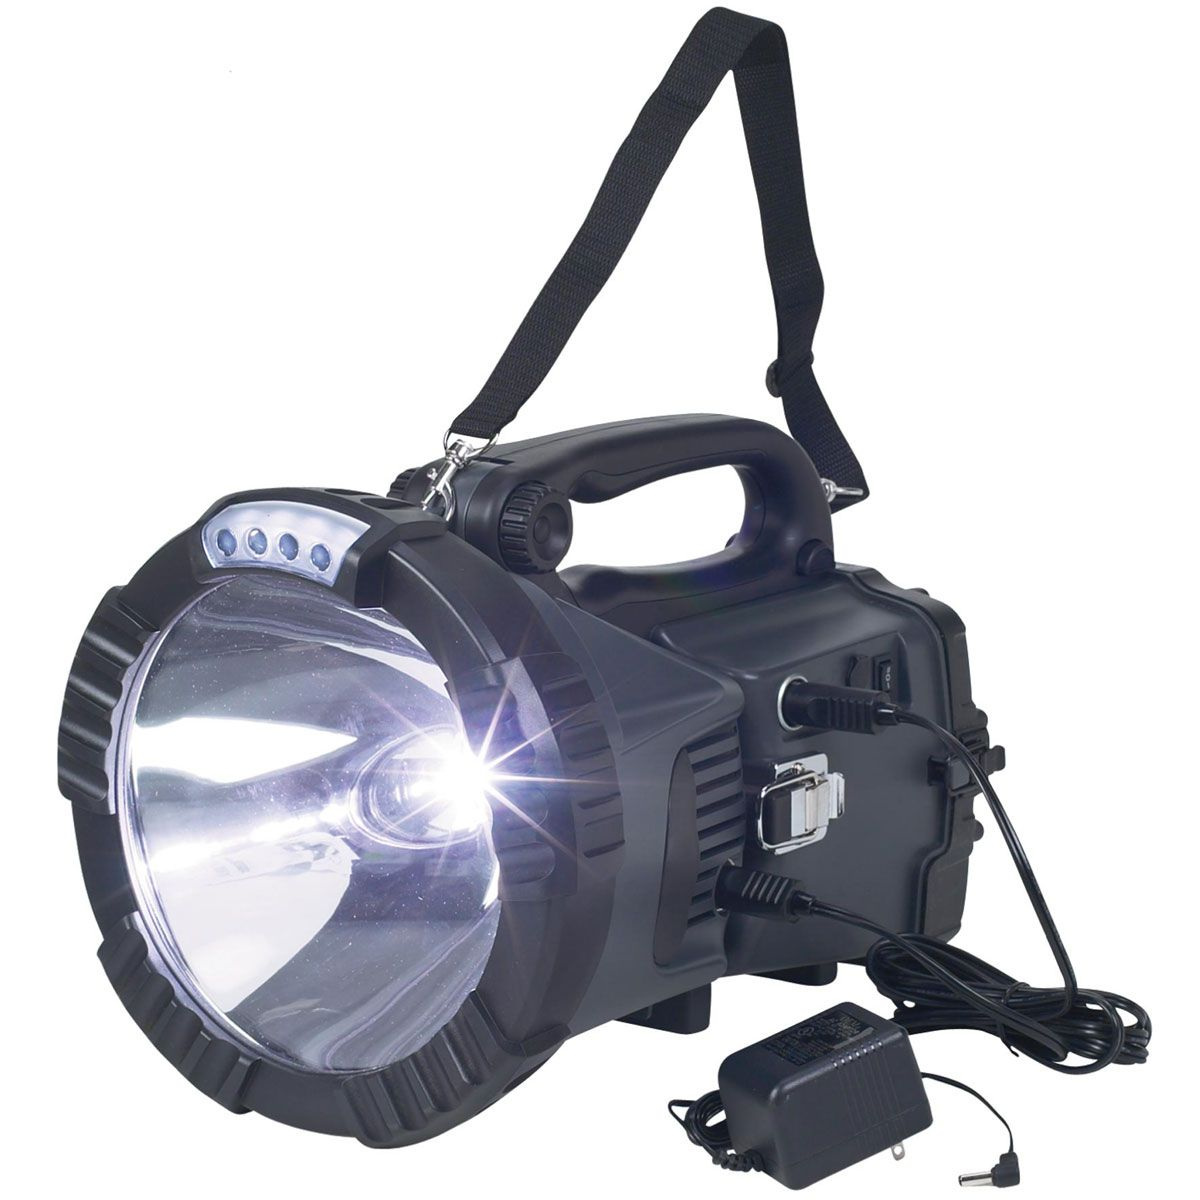 Sunforce 40 Million Candlepower Hid Spotlight Lantern Lanterns Outdoor Survival Equipment